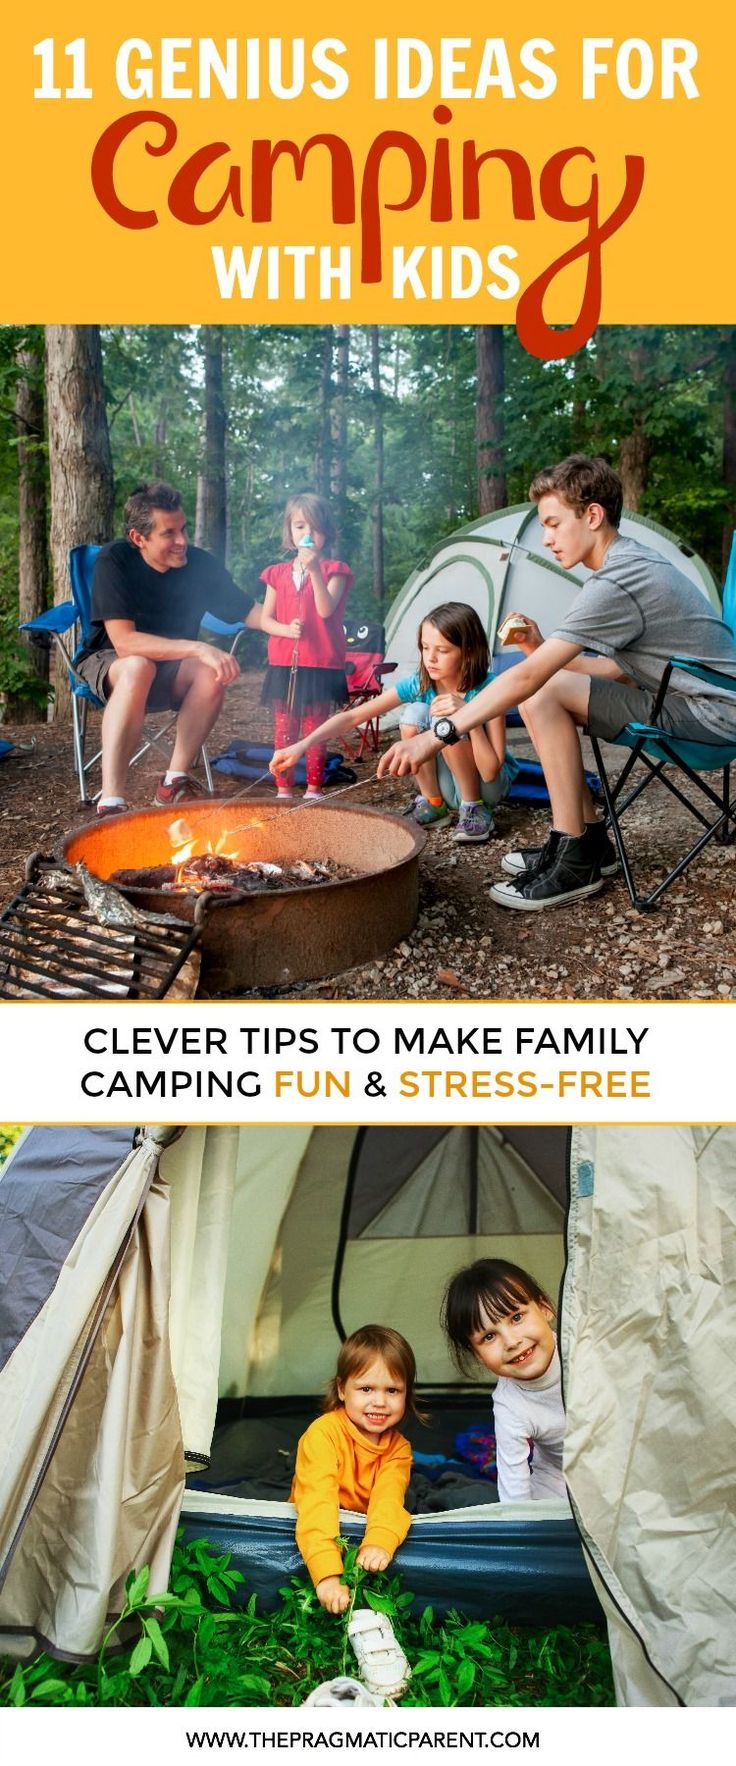 7 Genius Camping Hacks to Make Camping with Kids Easy & Fun! How to Organize for Family Camping, Prepare Your Campsite, Tips with Kids, Safety & Food Hacks, and Tips to Ensure a Great Camping Experience with Kids.